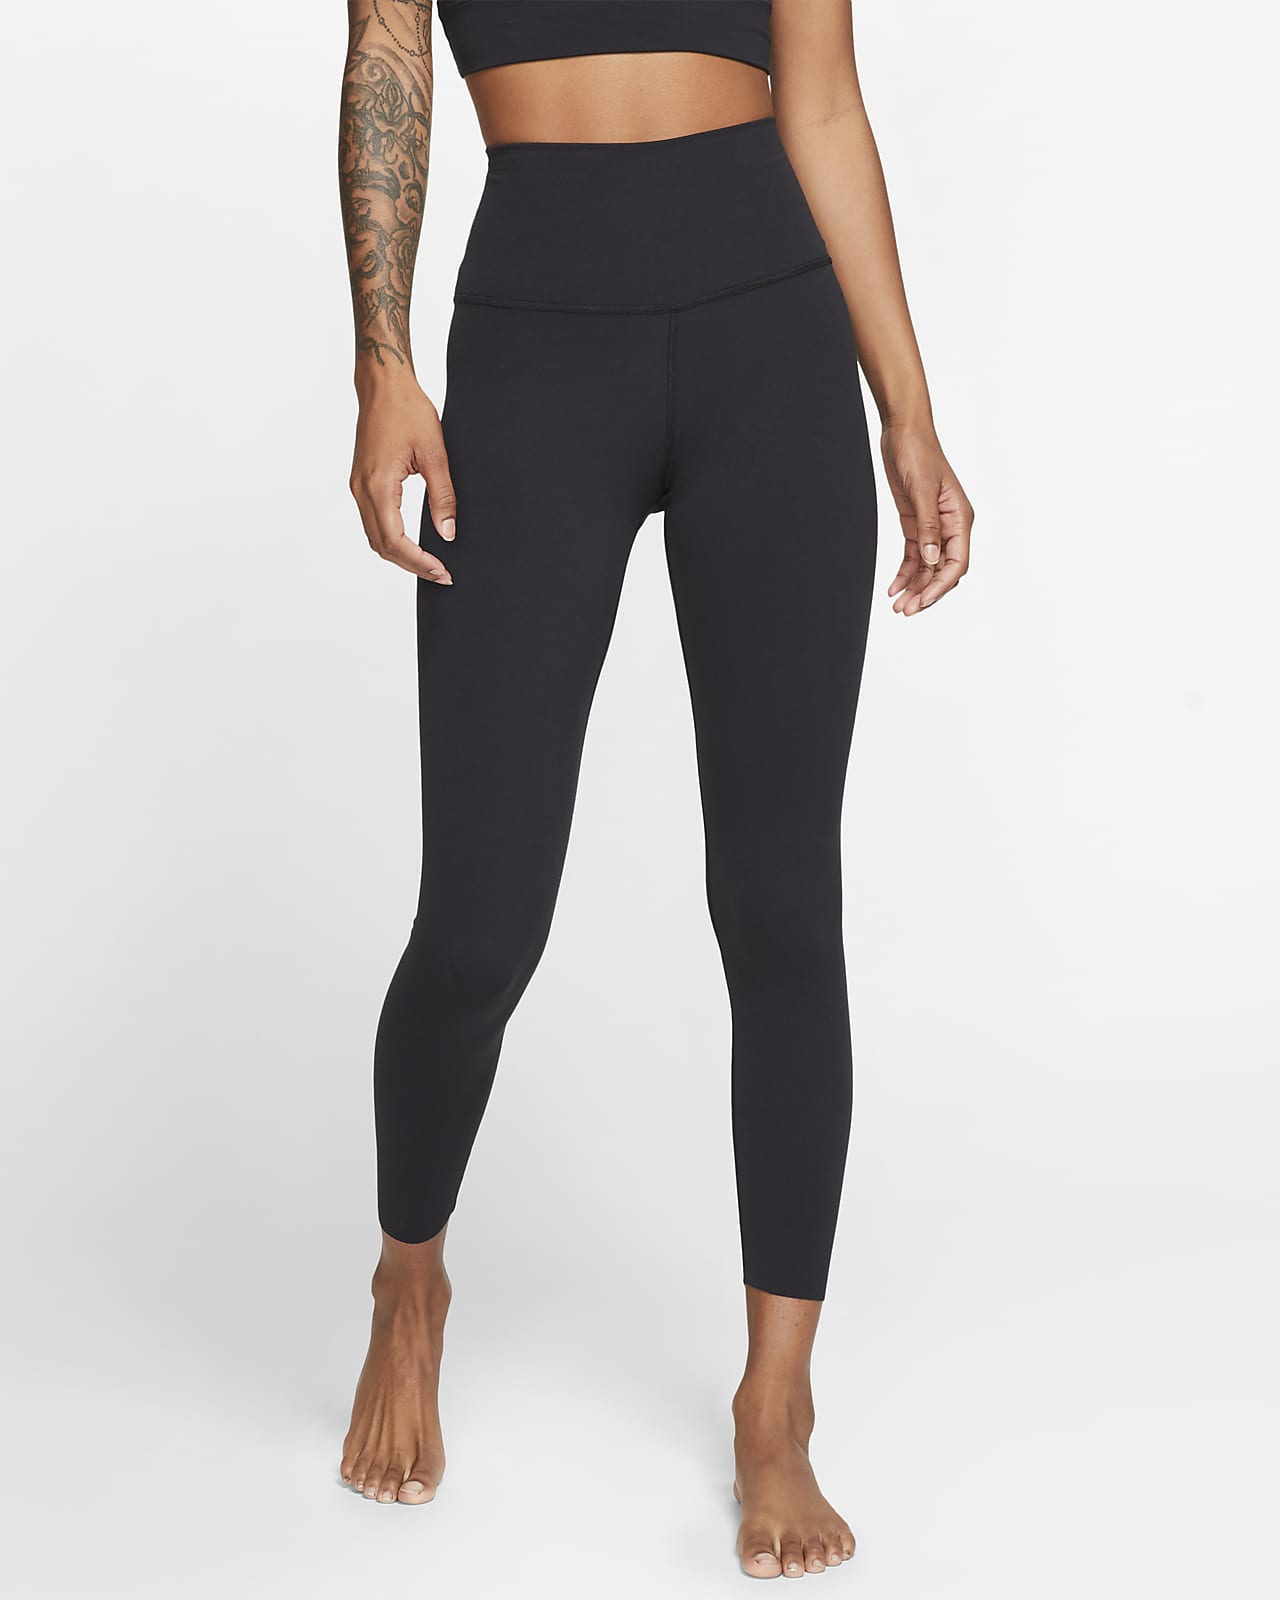 Yoga Luxe 7/8 Tights by NIKE, available on nordstrom.com for $90 Kendall Jenner Pants Exact Product